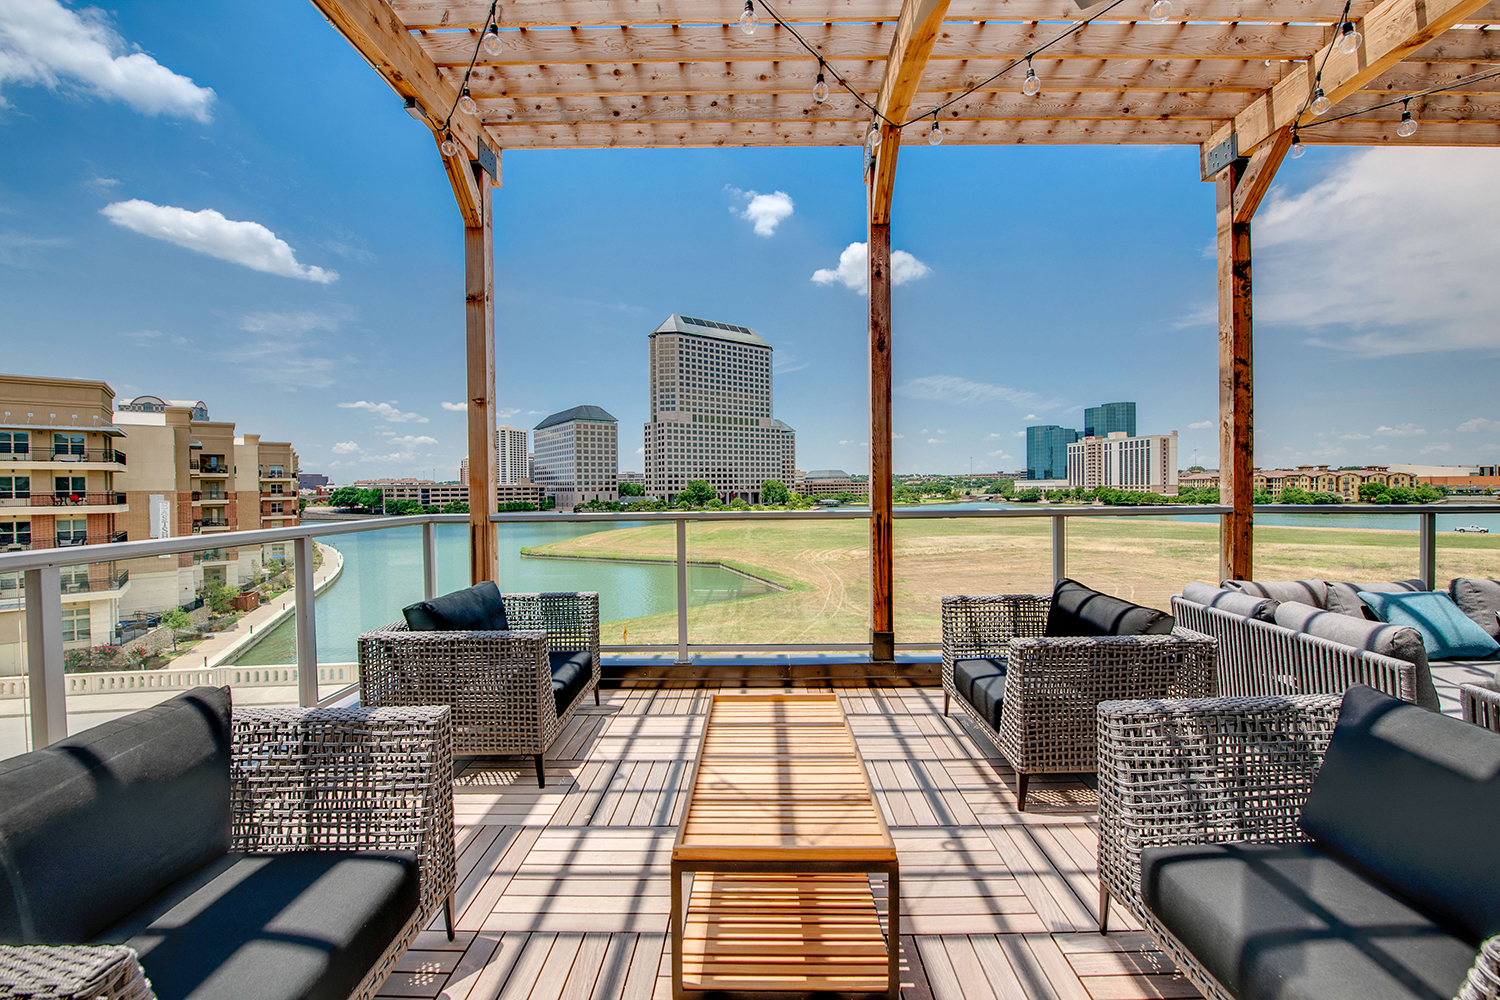 outdoor patio lounge with seating with view of small lake